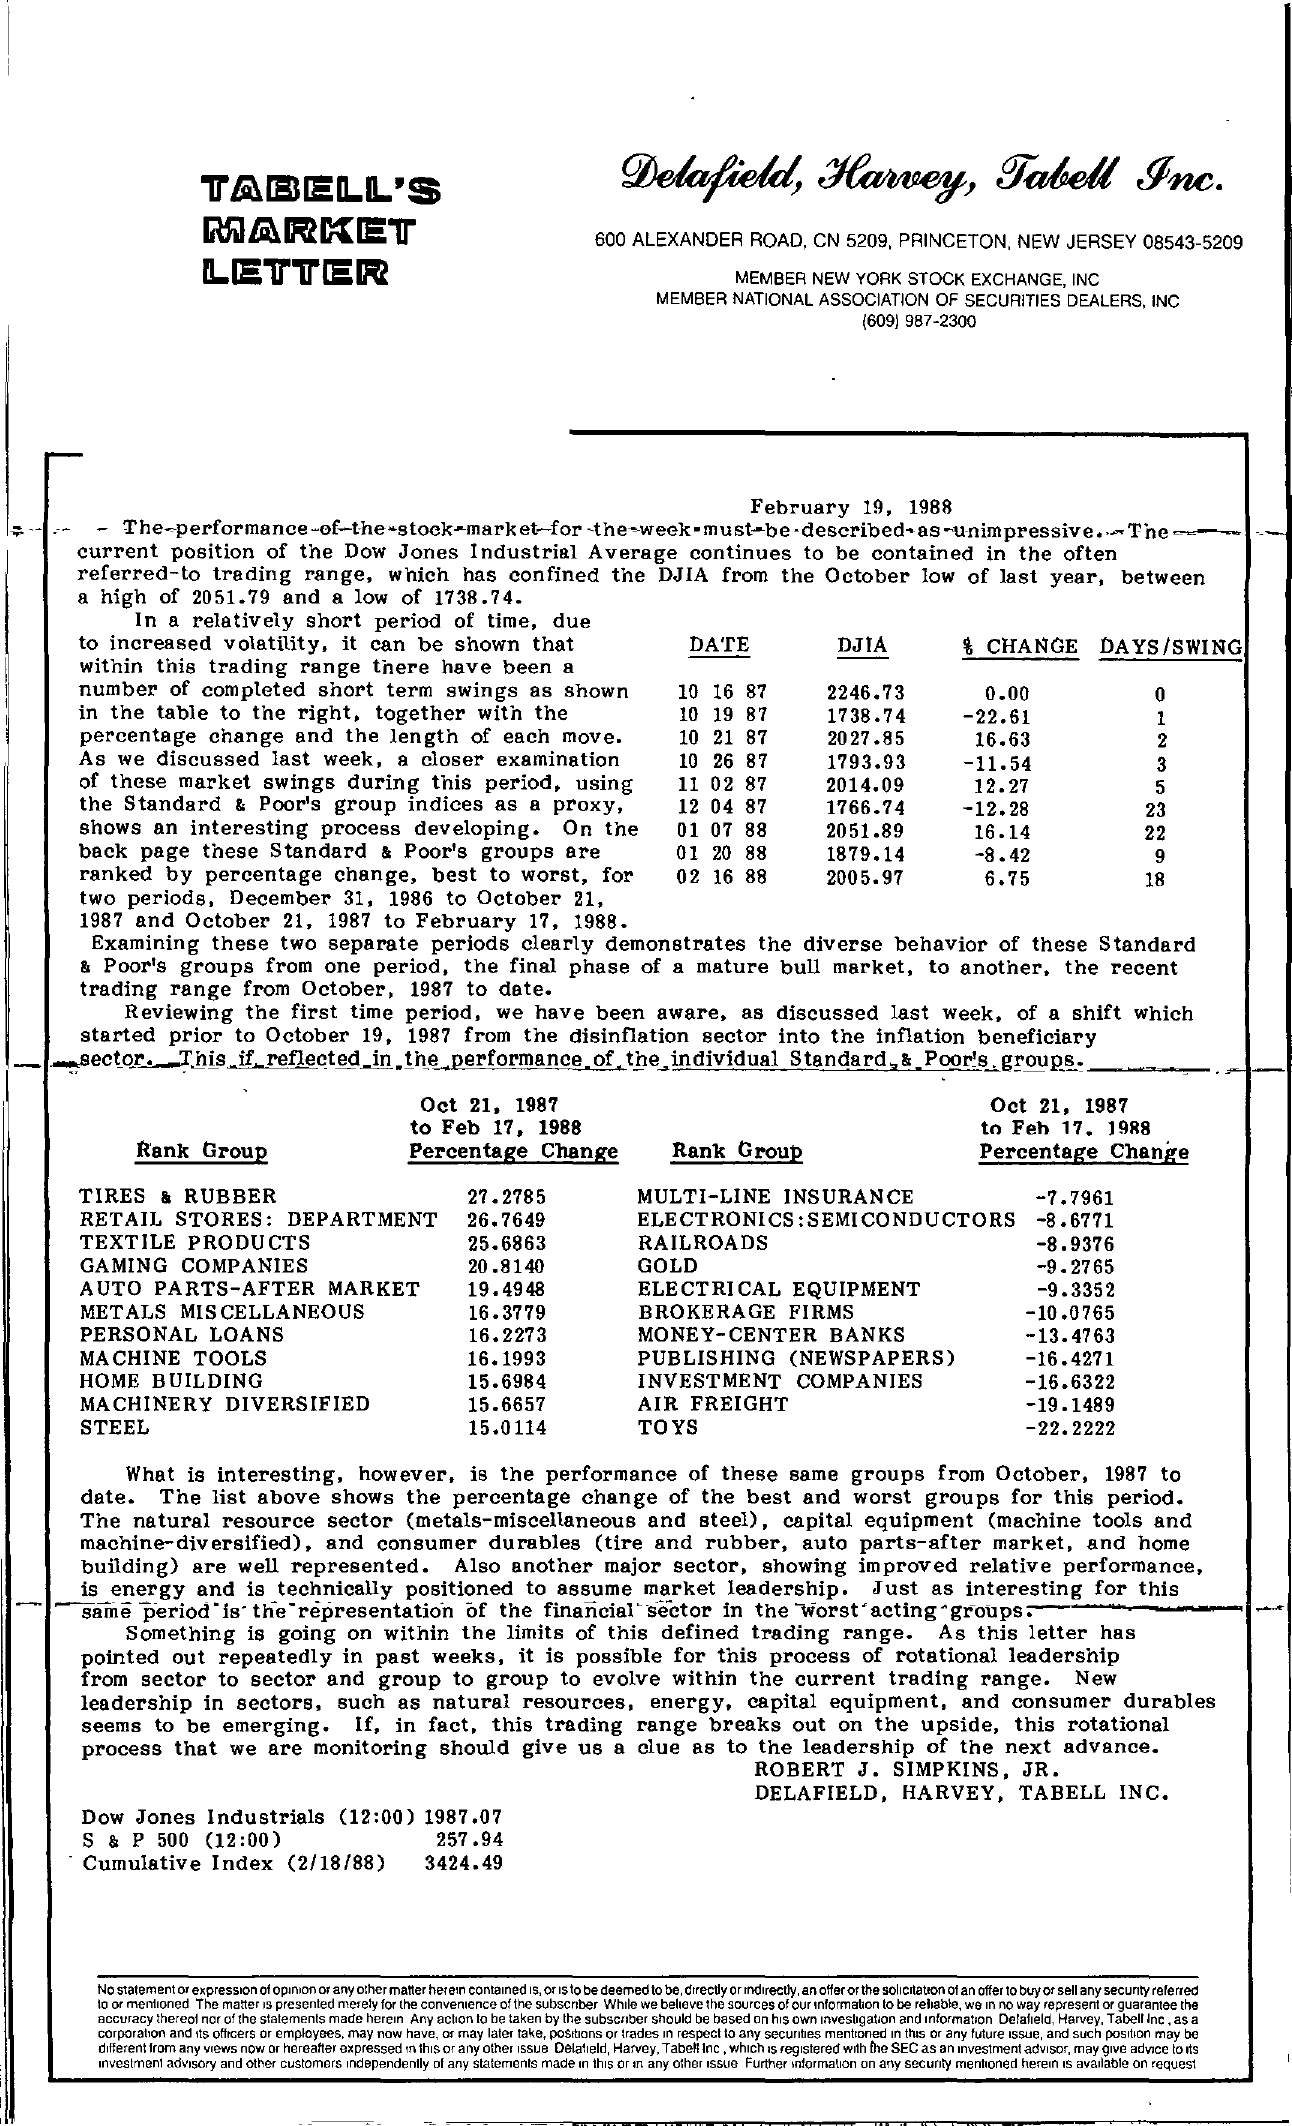 Tabell's Market Letter - February 19, 1988 page 1